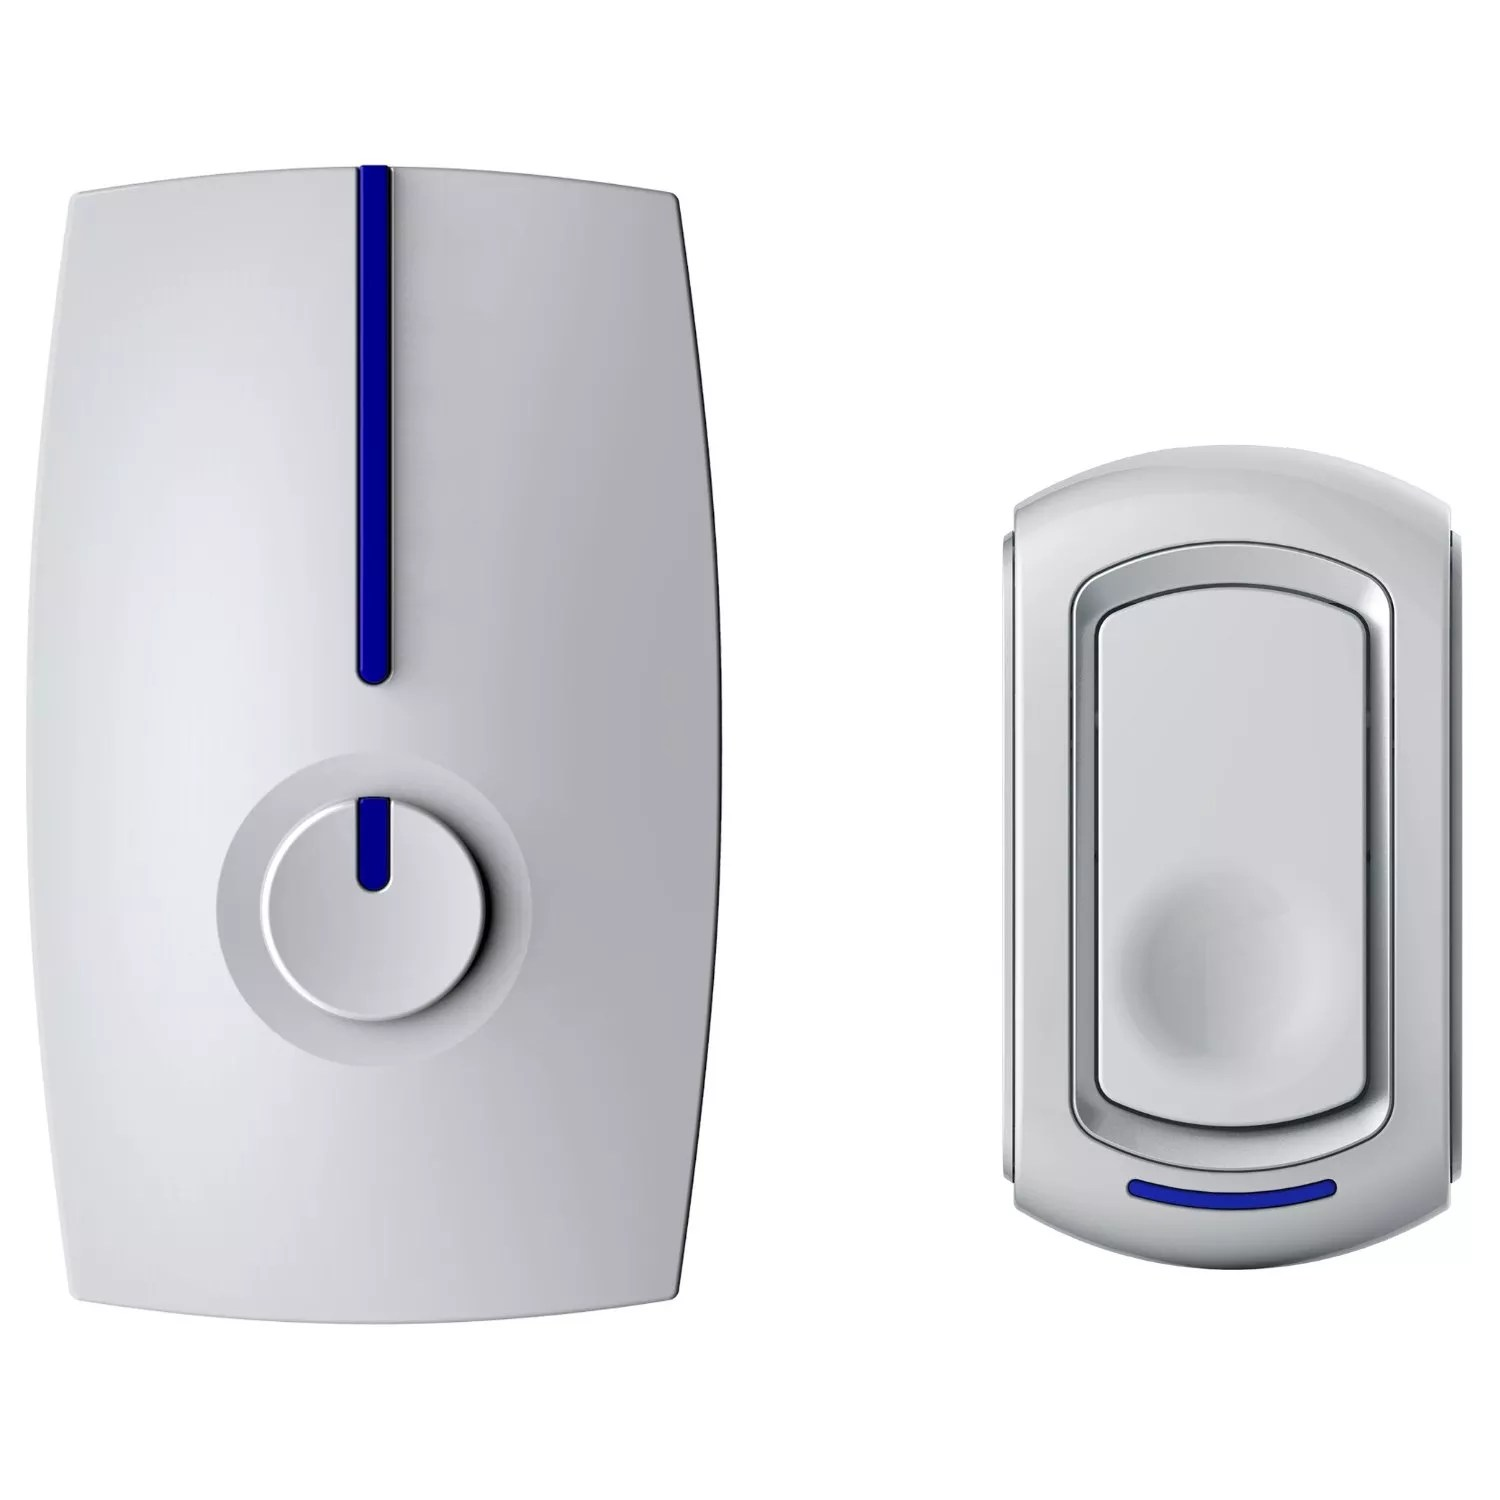 Ring Home Security System Reviews